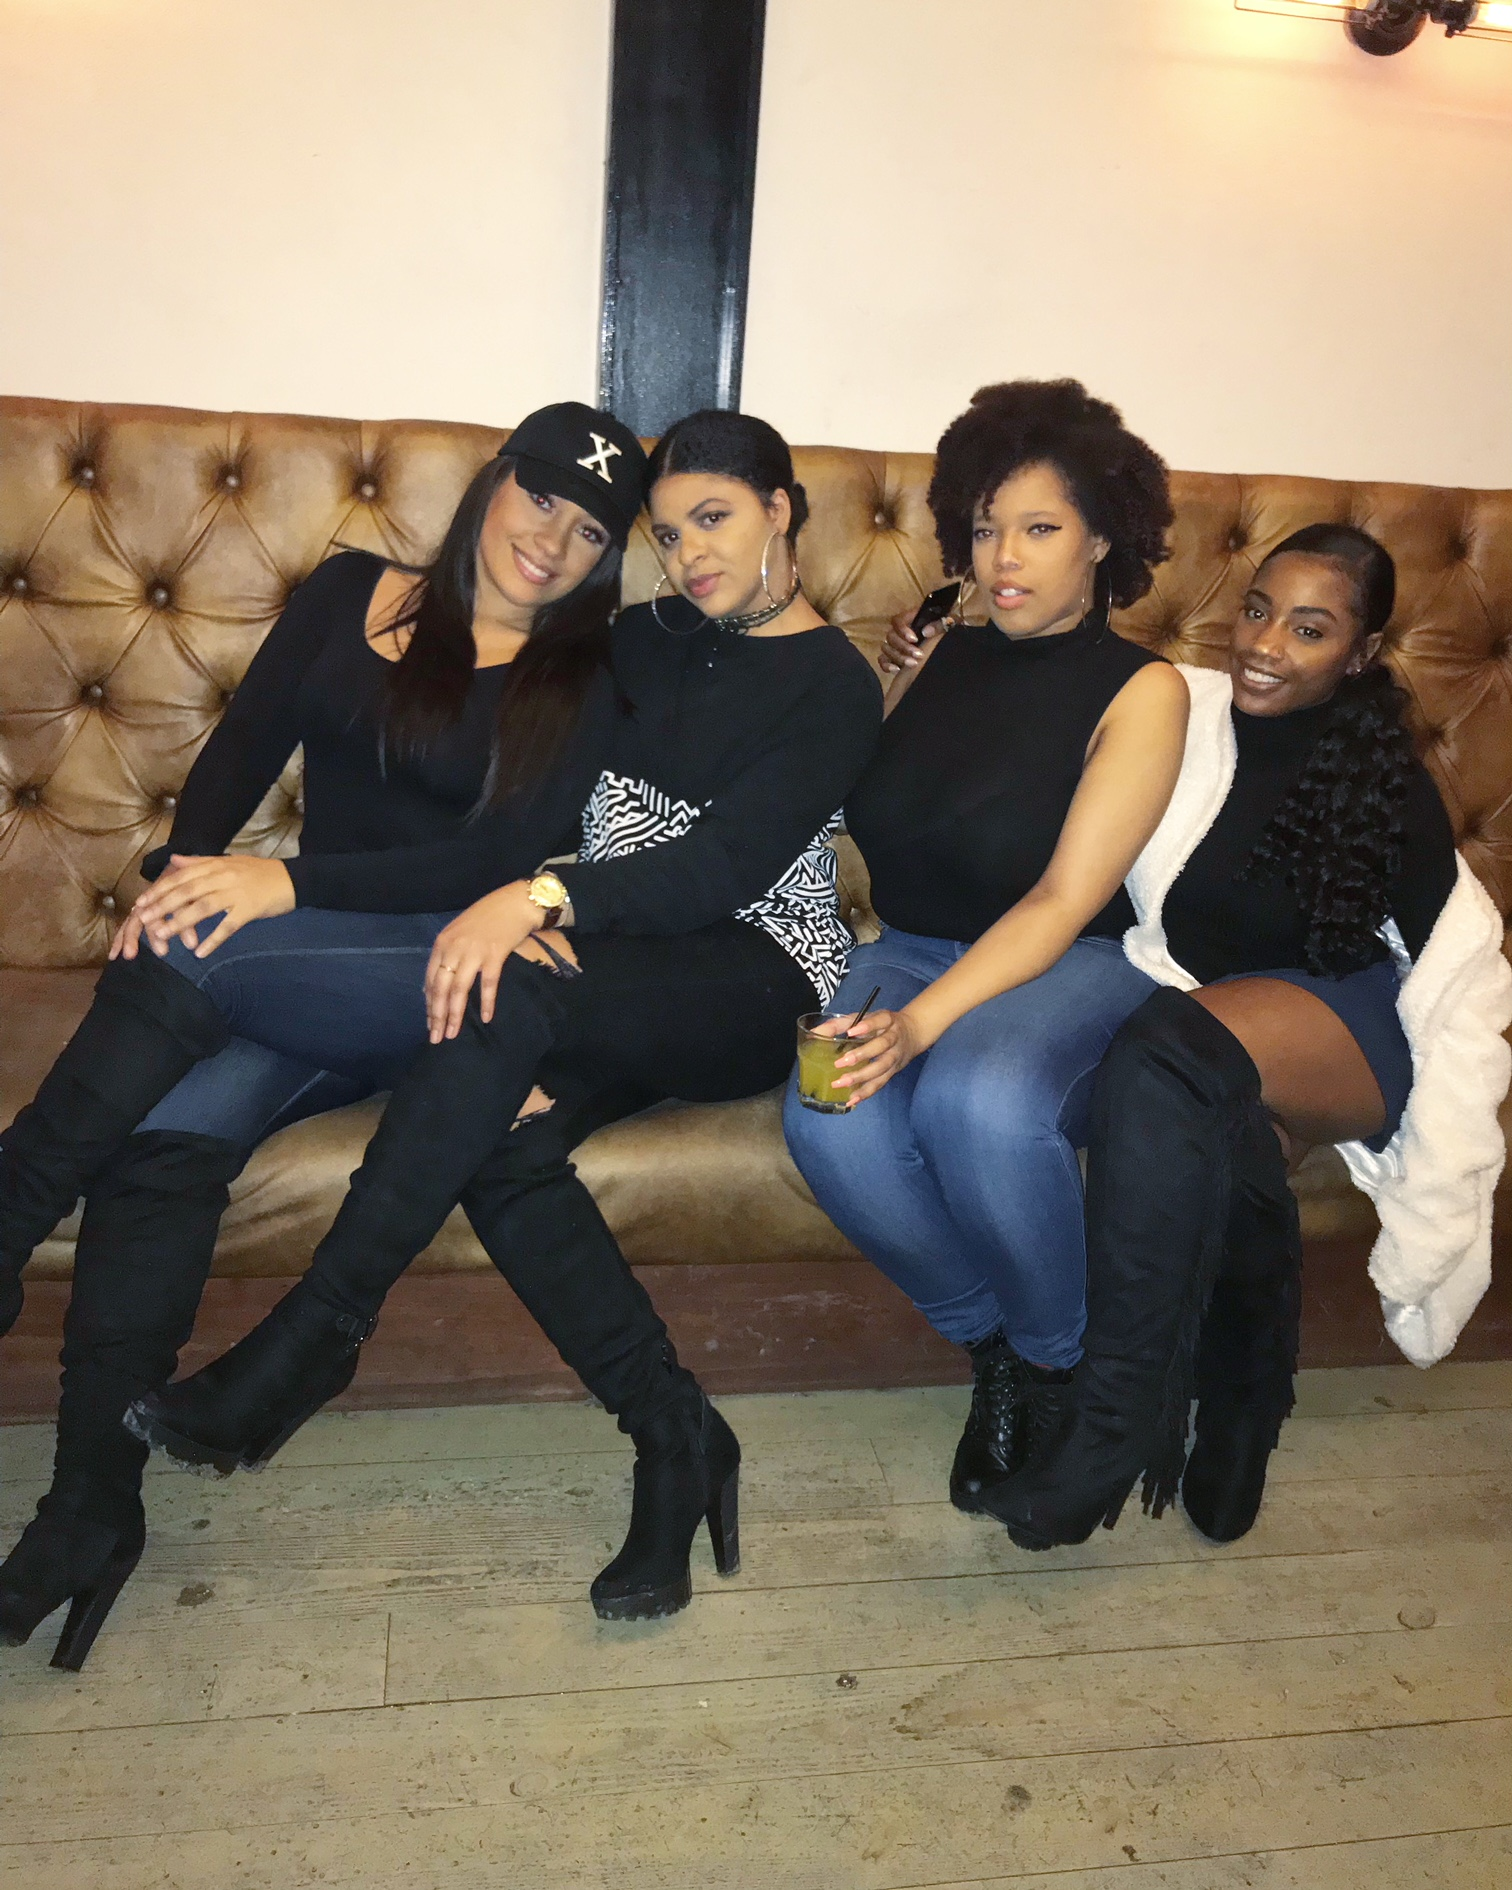 With a large couch and baddies, comes a photo opp. Duhhh